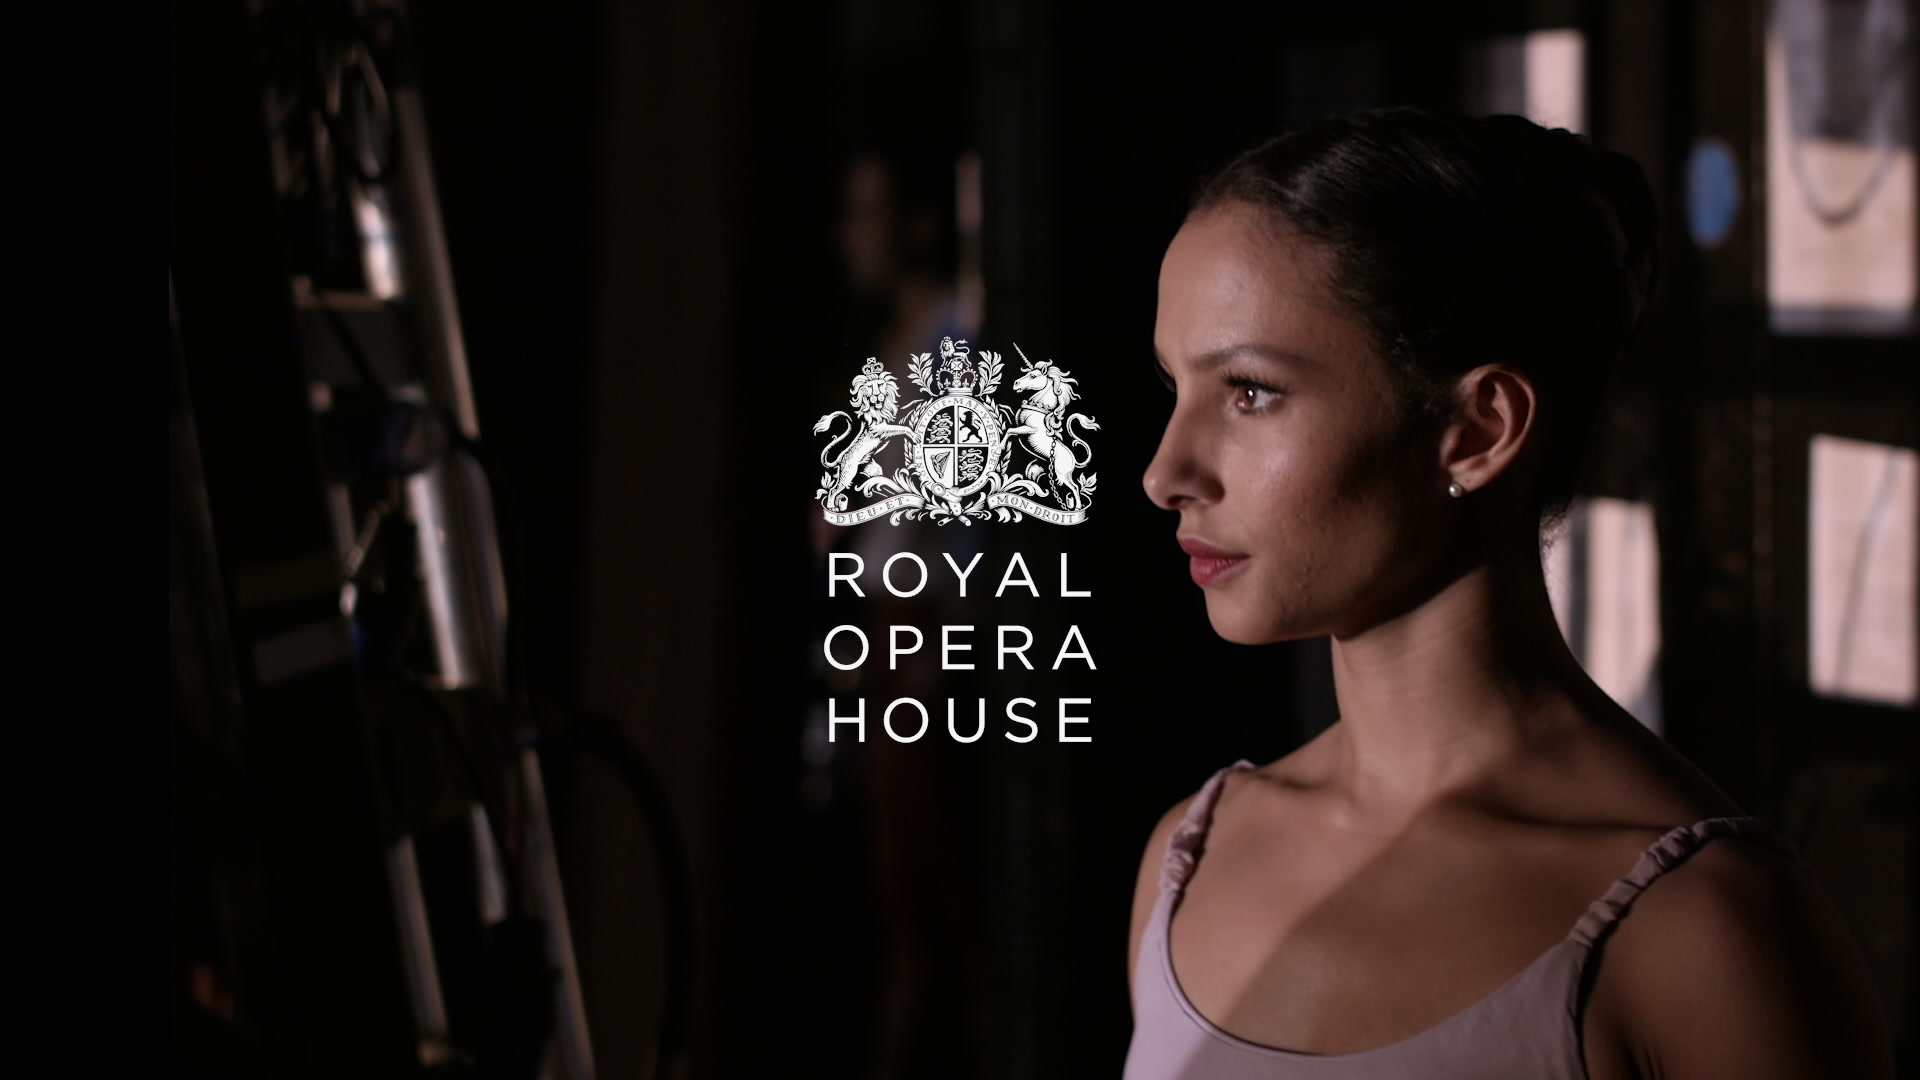 Ballerina awaits at the side of Royal Opera House stage